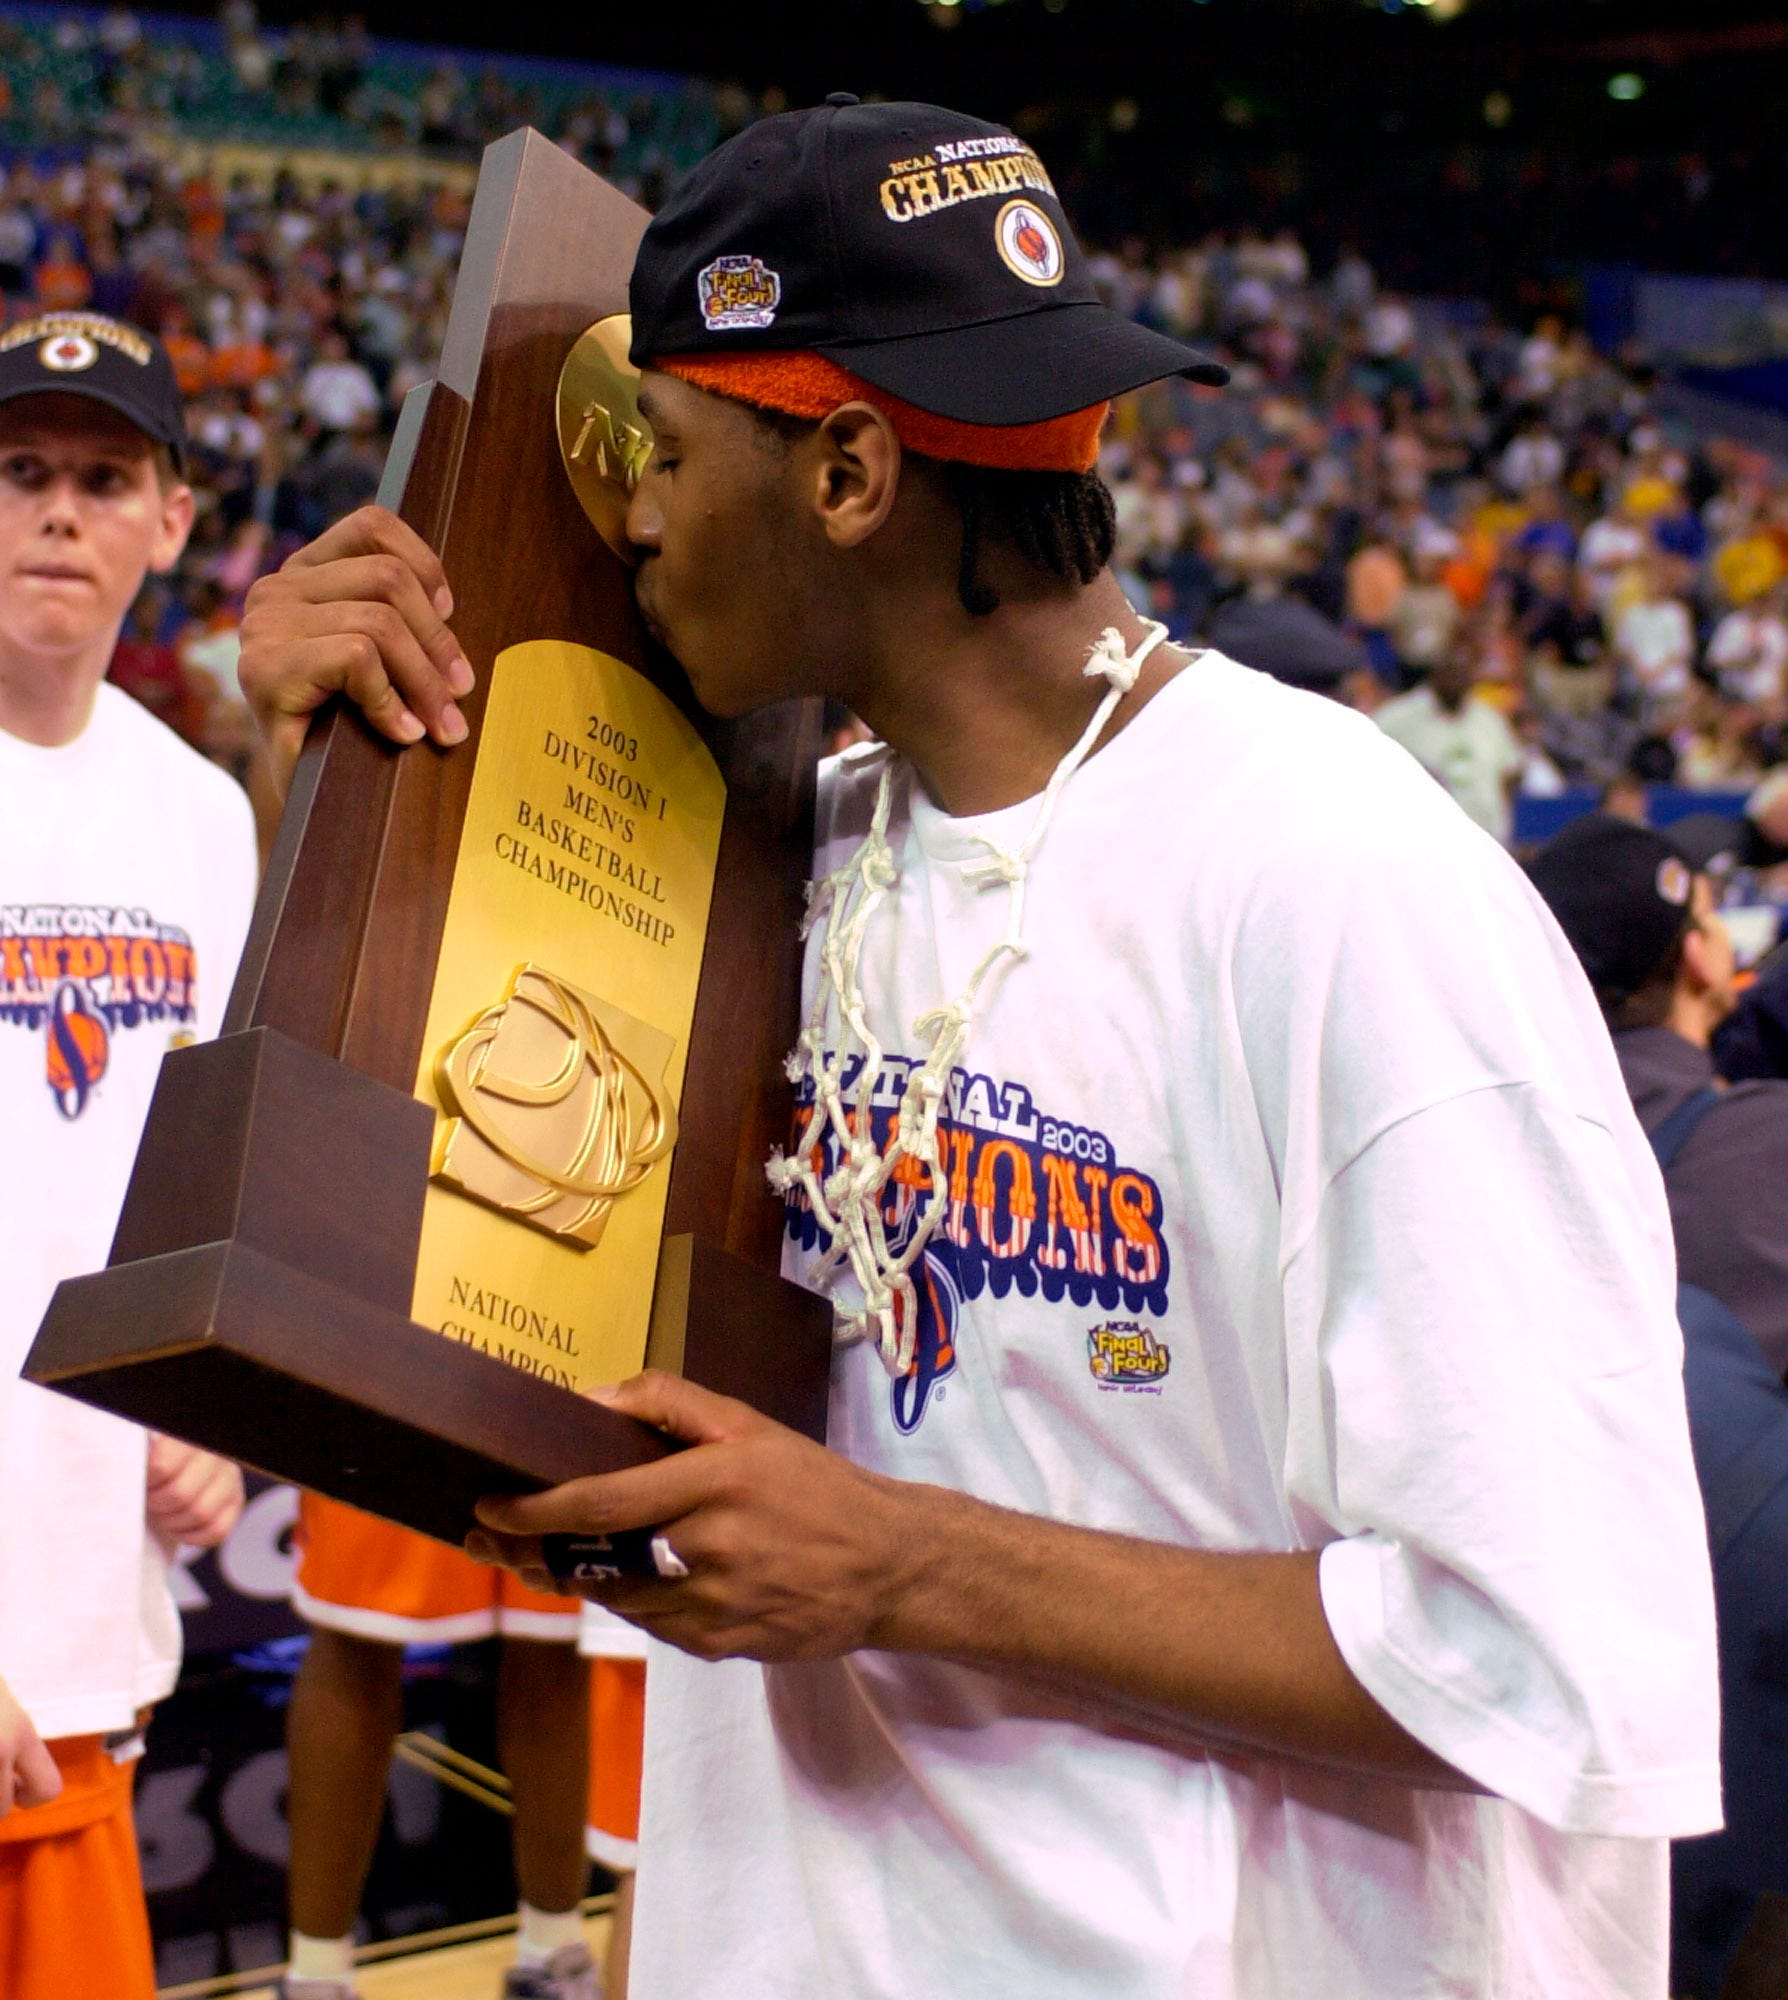 Syracuse's Carmelo Anthony after winning the NCAA championship over Kansas as a freshman. He was also named the most outstanding player of the Final Four.